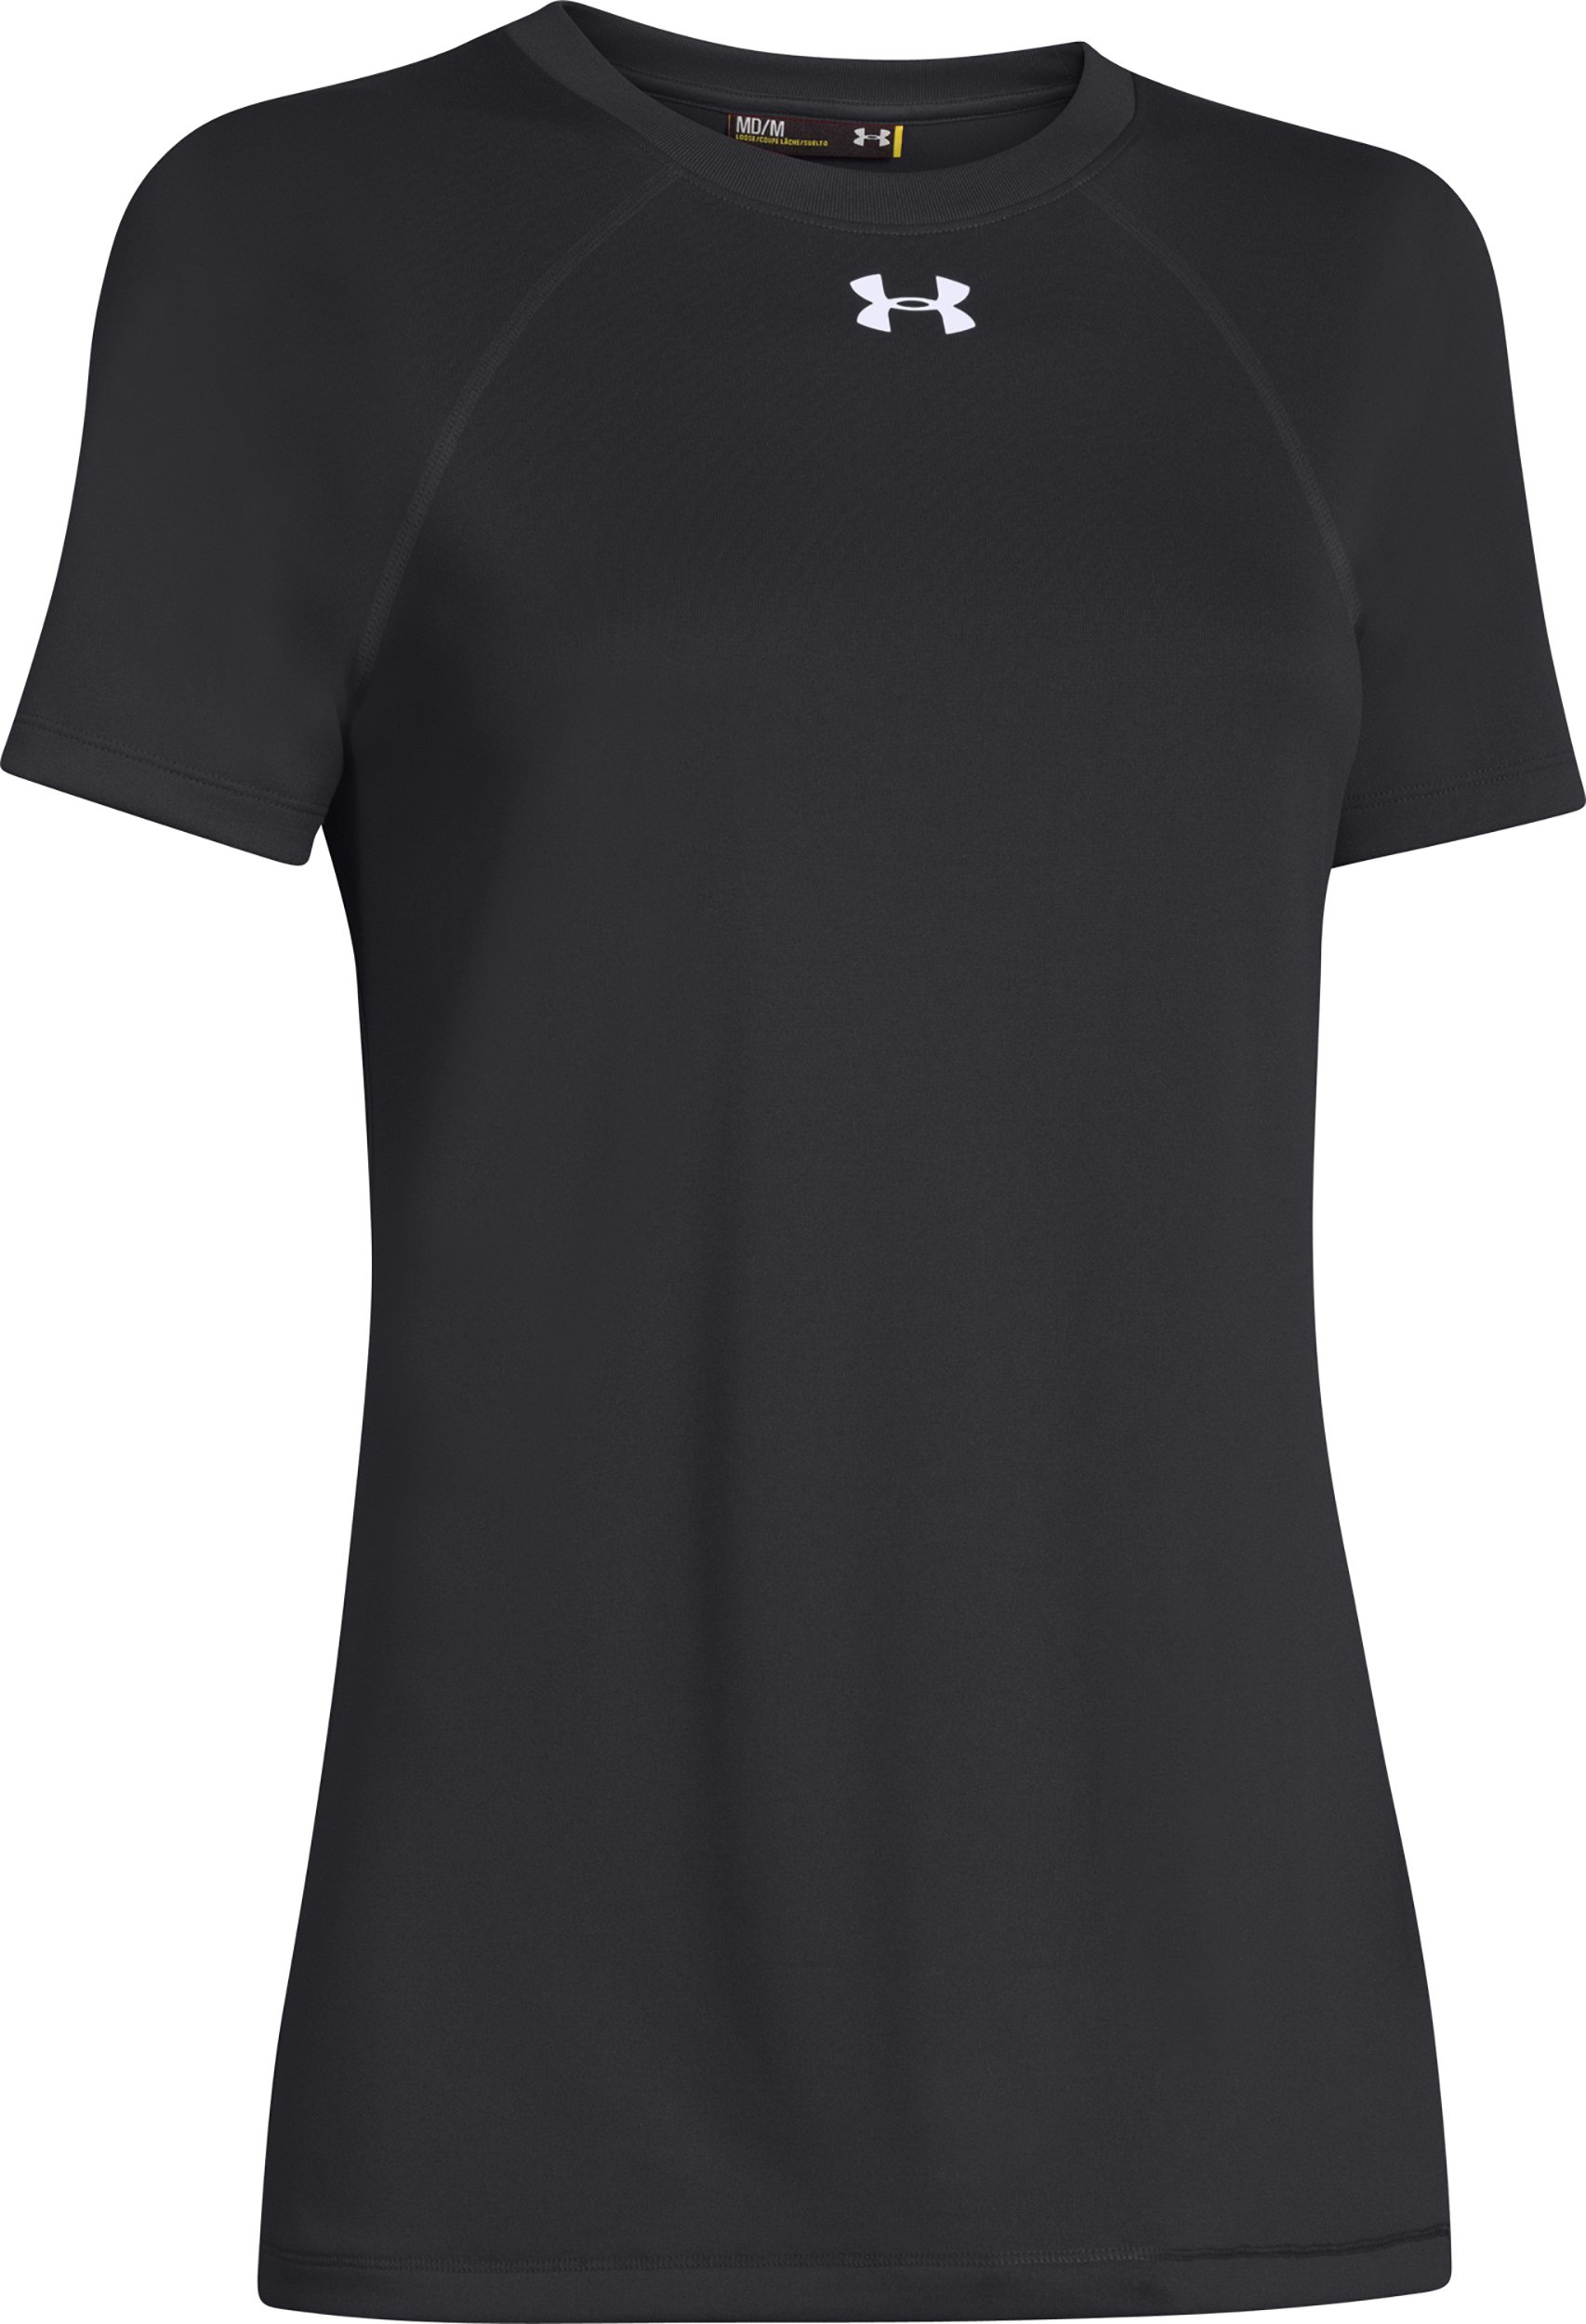 Under Armour Women's UA Locker T-Shirt, Black/White, Medium